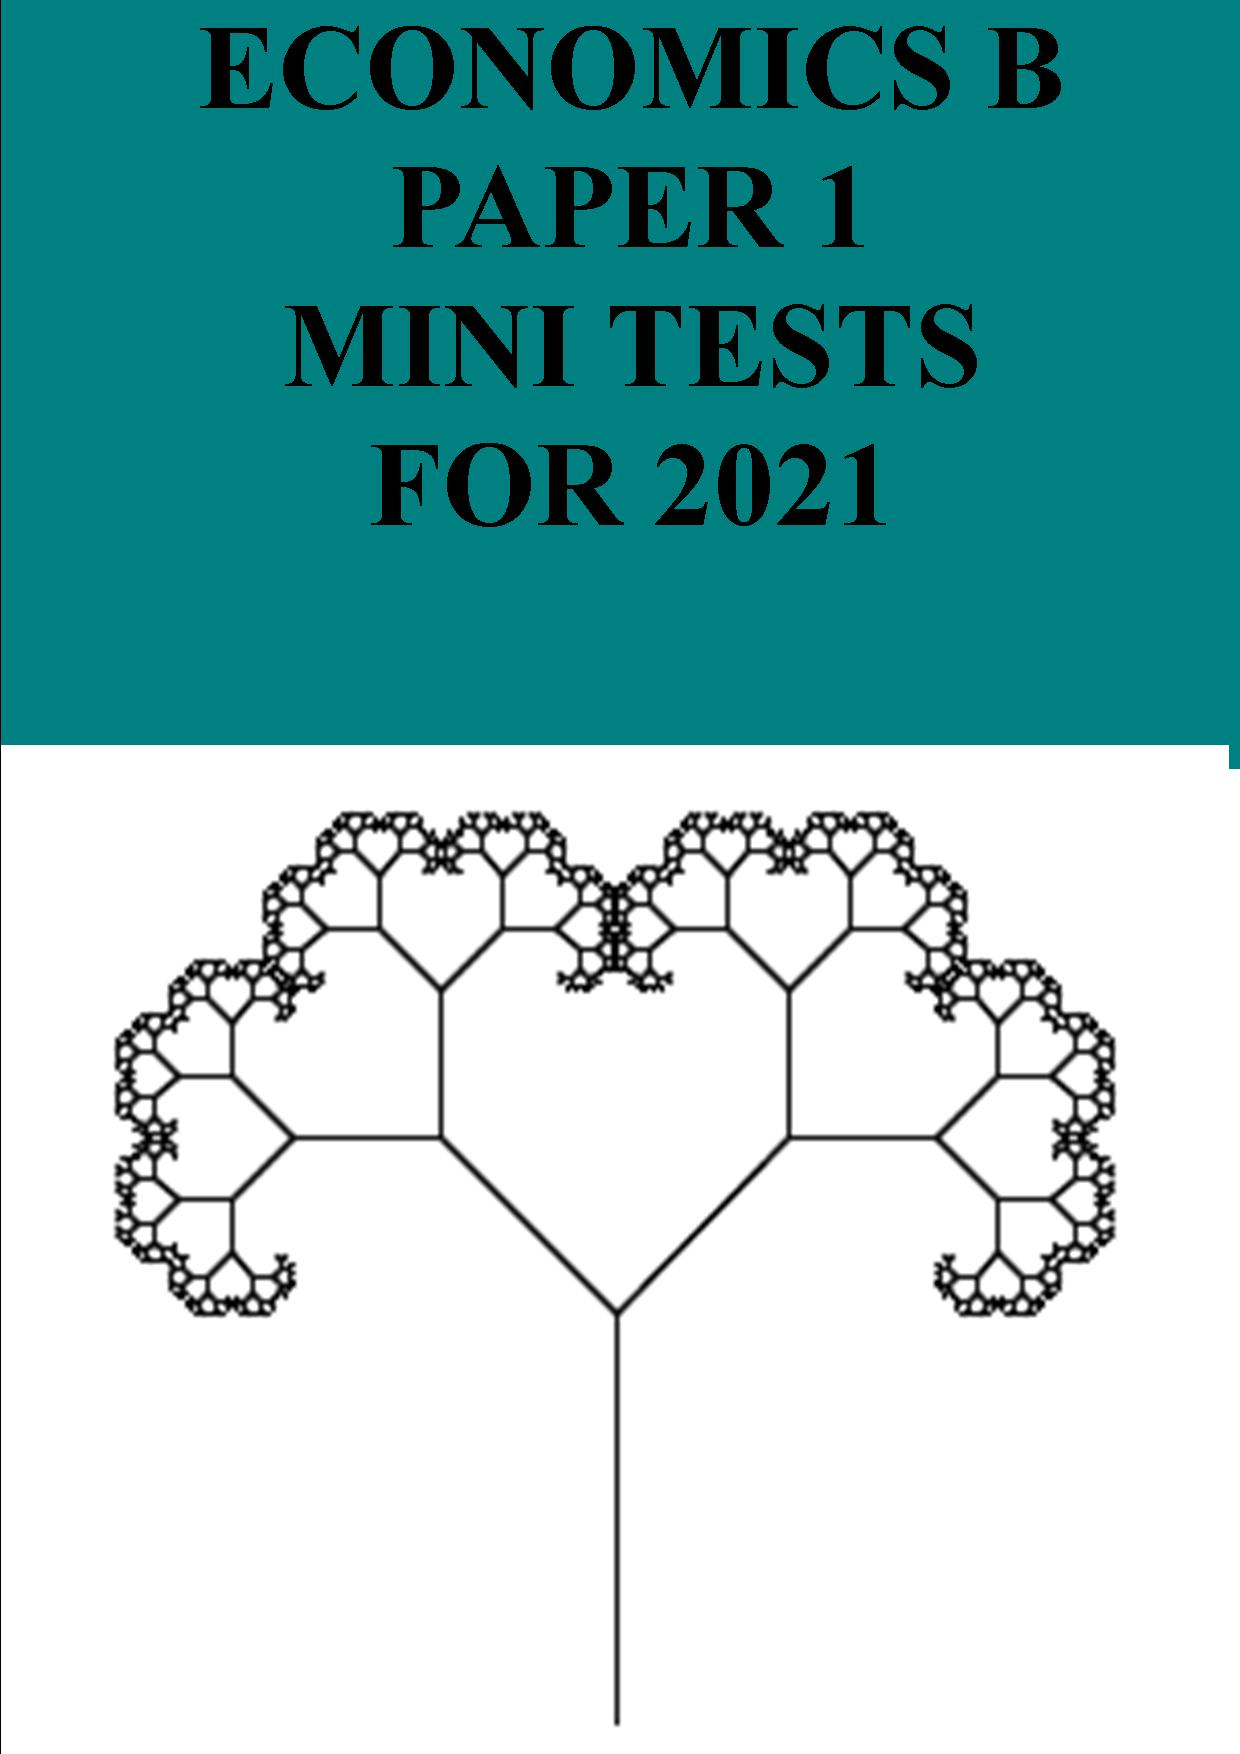 Paper 1 mini tests for 2021